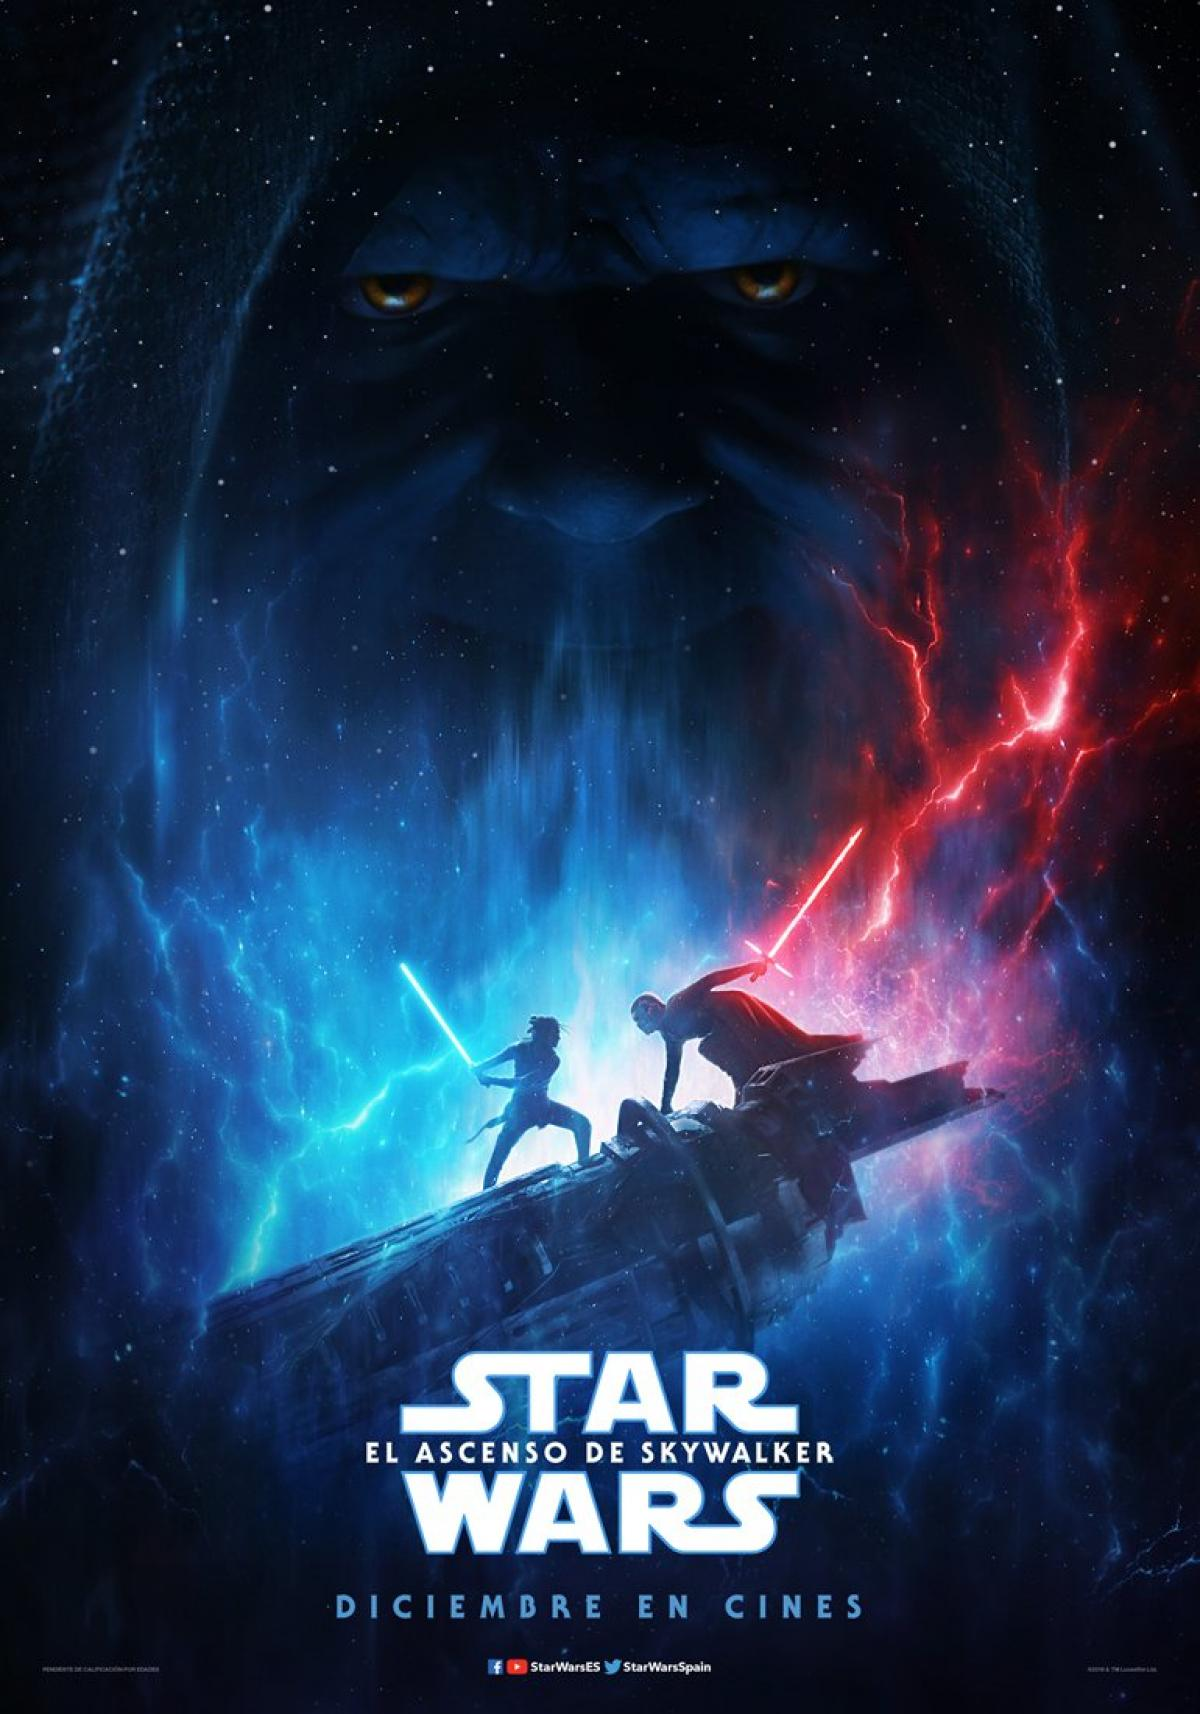 star-wars-episodio-ix-ascenso-skywalker